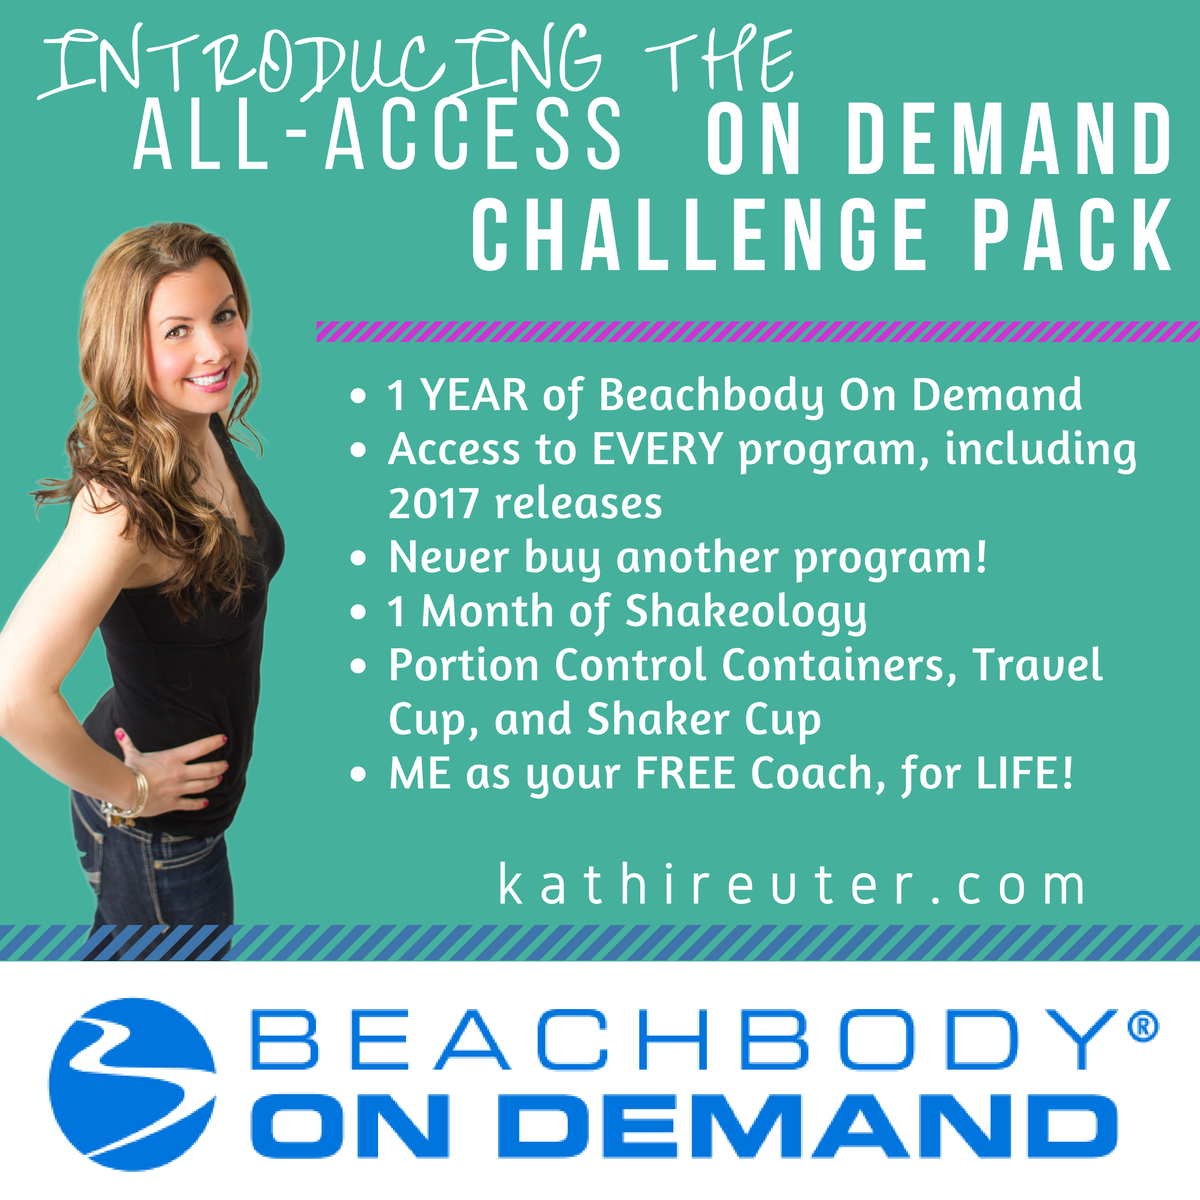 The New All-Access Challenge Pack – Access to Every Beachbody Program!